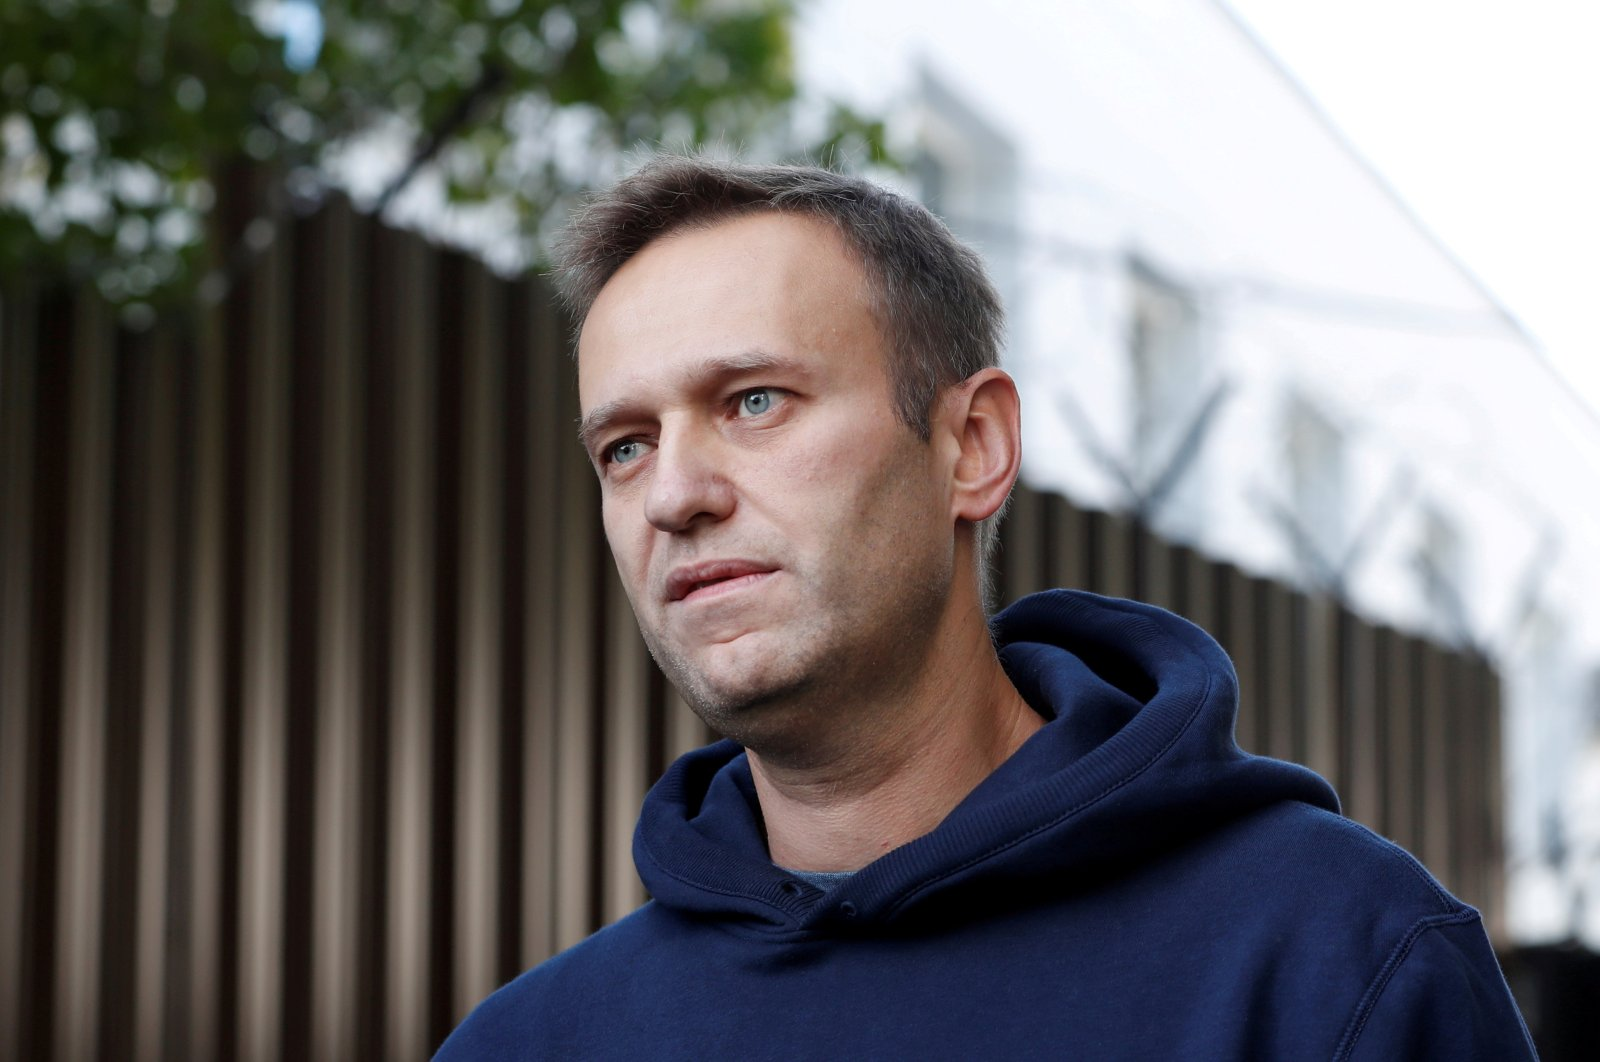 Russian opposition leader Alexei Navalny speaks with journalists after he was released from a detention center, Moscow, Aug. 23, 2019. (REUTERS Photo)